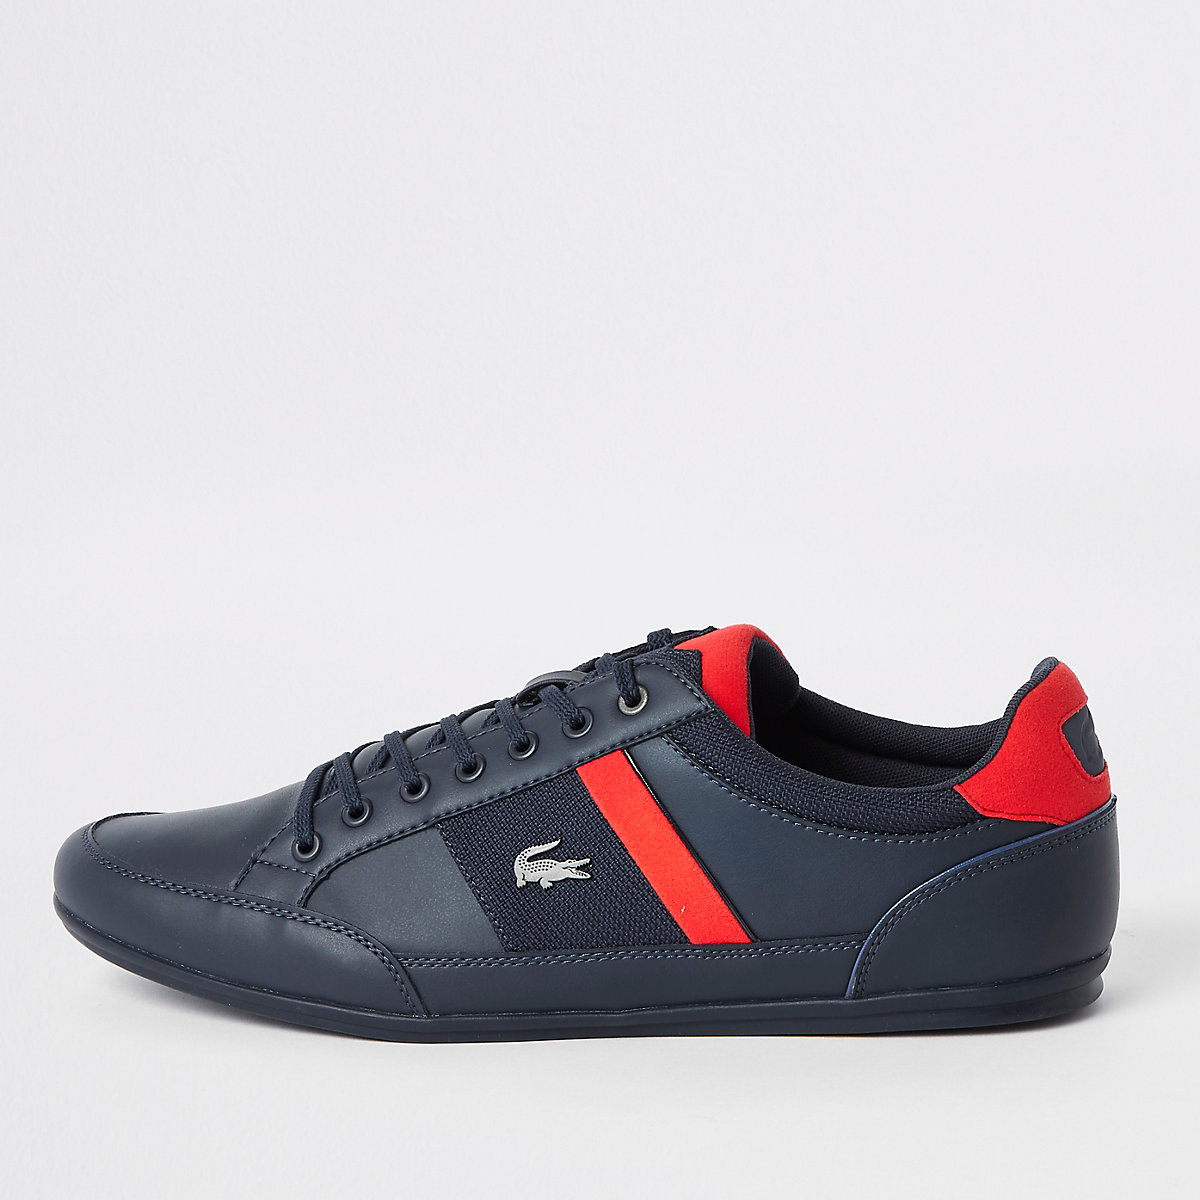 Lacoste navy leather lace-up sneakers